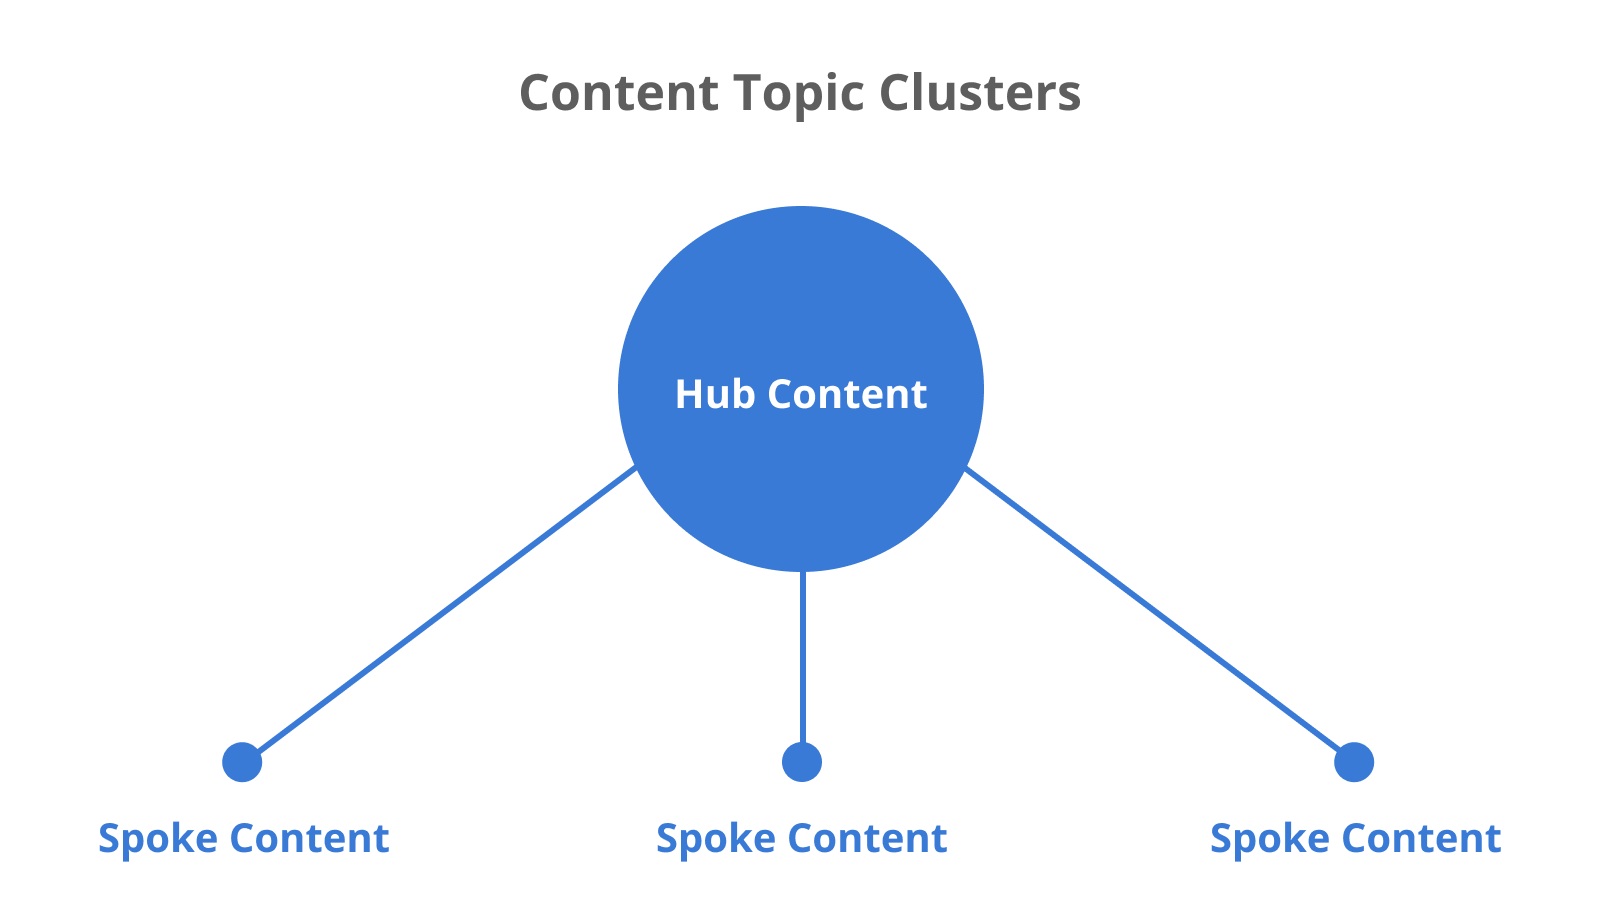 SaaS content topic clusters: from Hub Content to Spoke Content